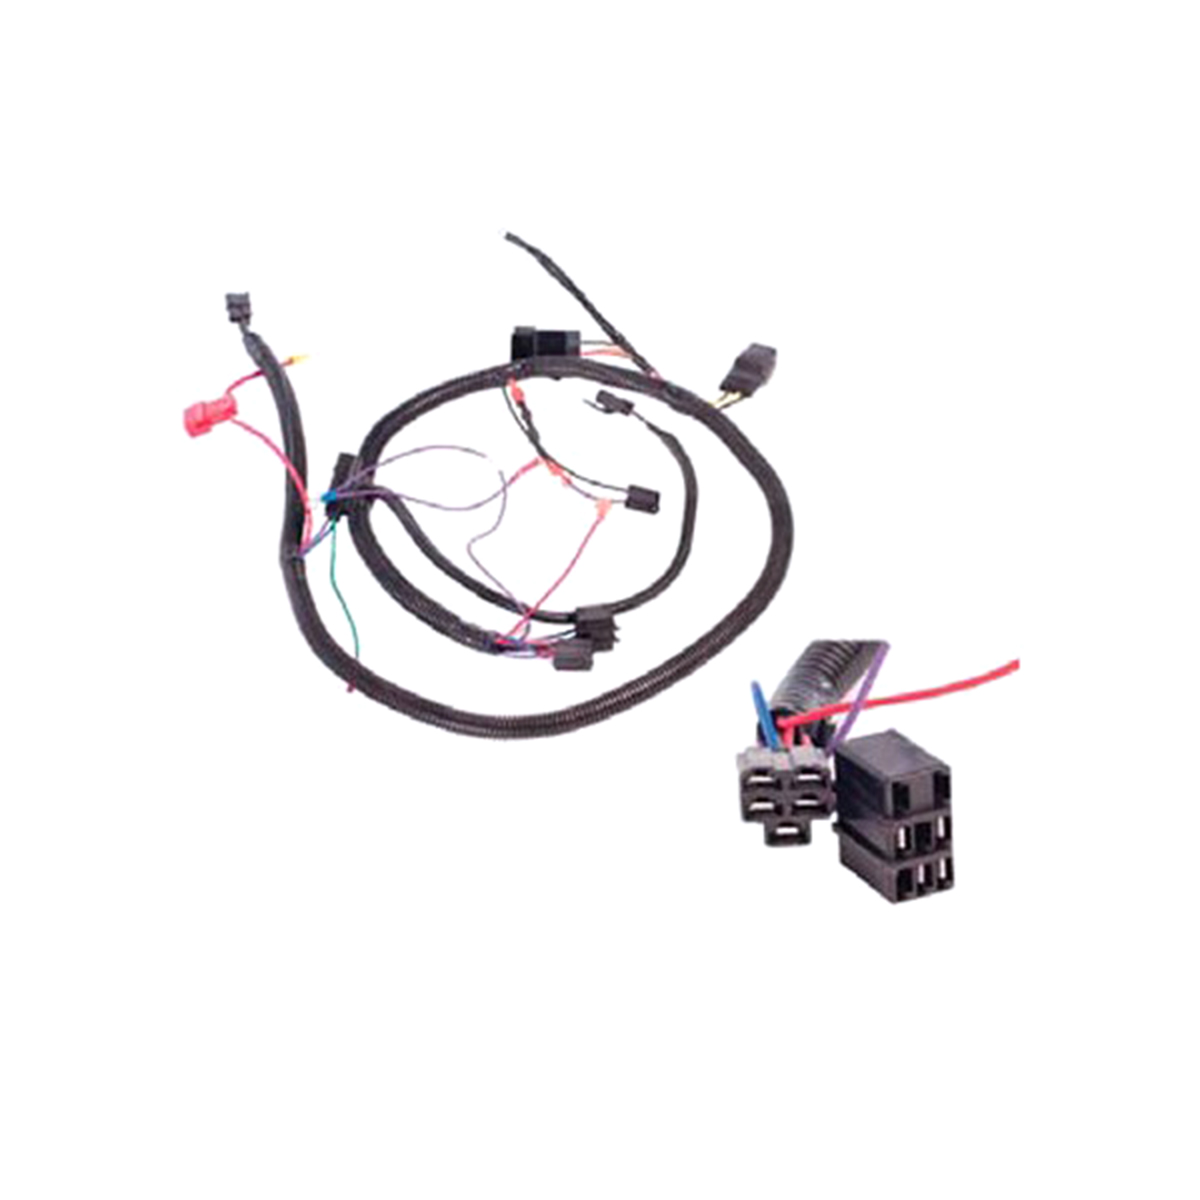 500073 wiring harnesses for dixie chopper lawn mowers chopper wiring harness at crackthecode.co